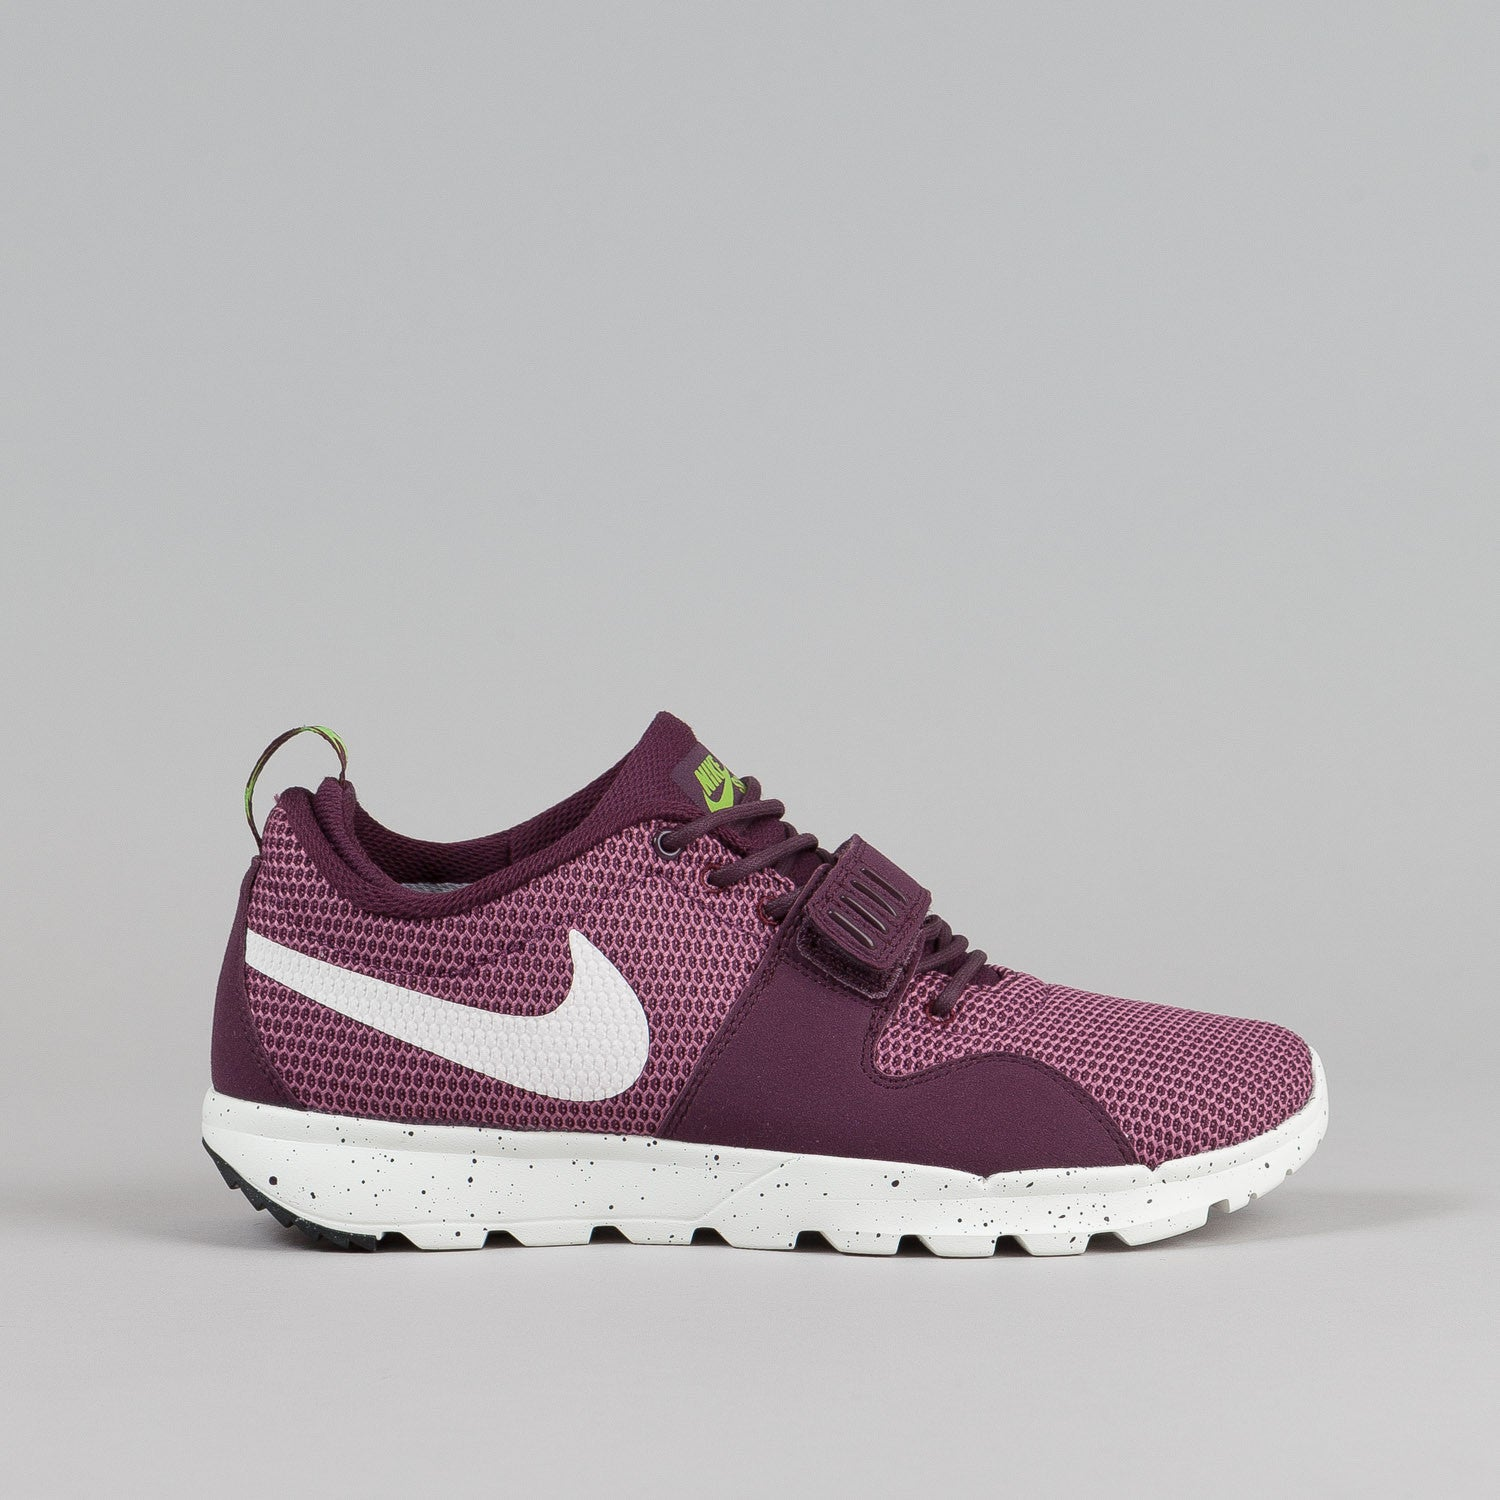 Nike SB Trainerendor Shoes Merlot / Sail